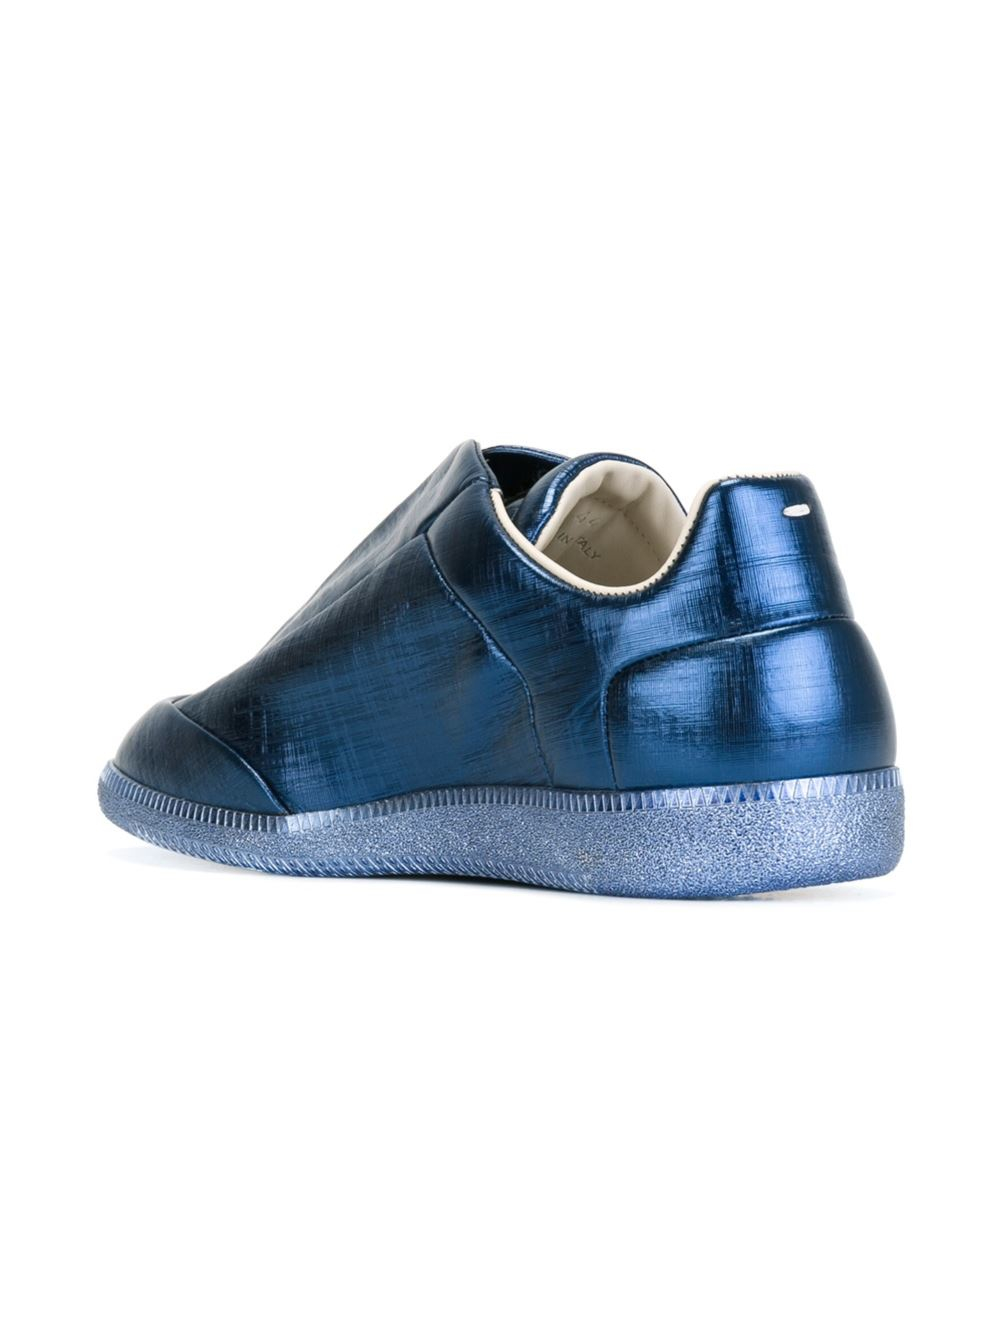 maison margiela 39 future 39 sneakers in blue for men lyst. Black Bedroom Furniture Sets. Home Design Ideas